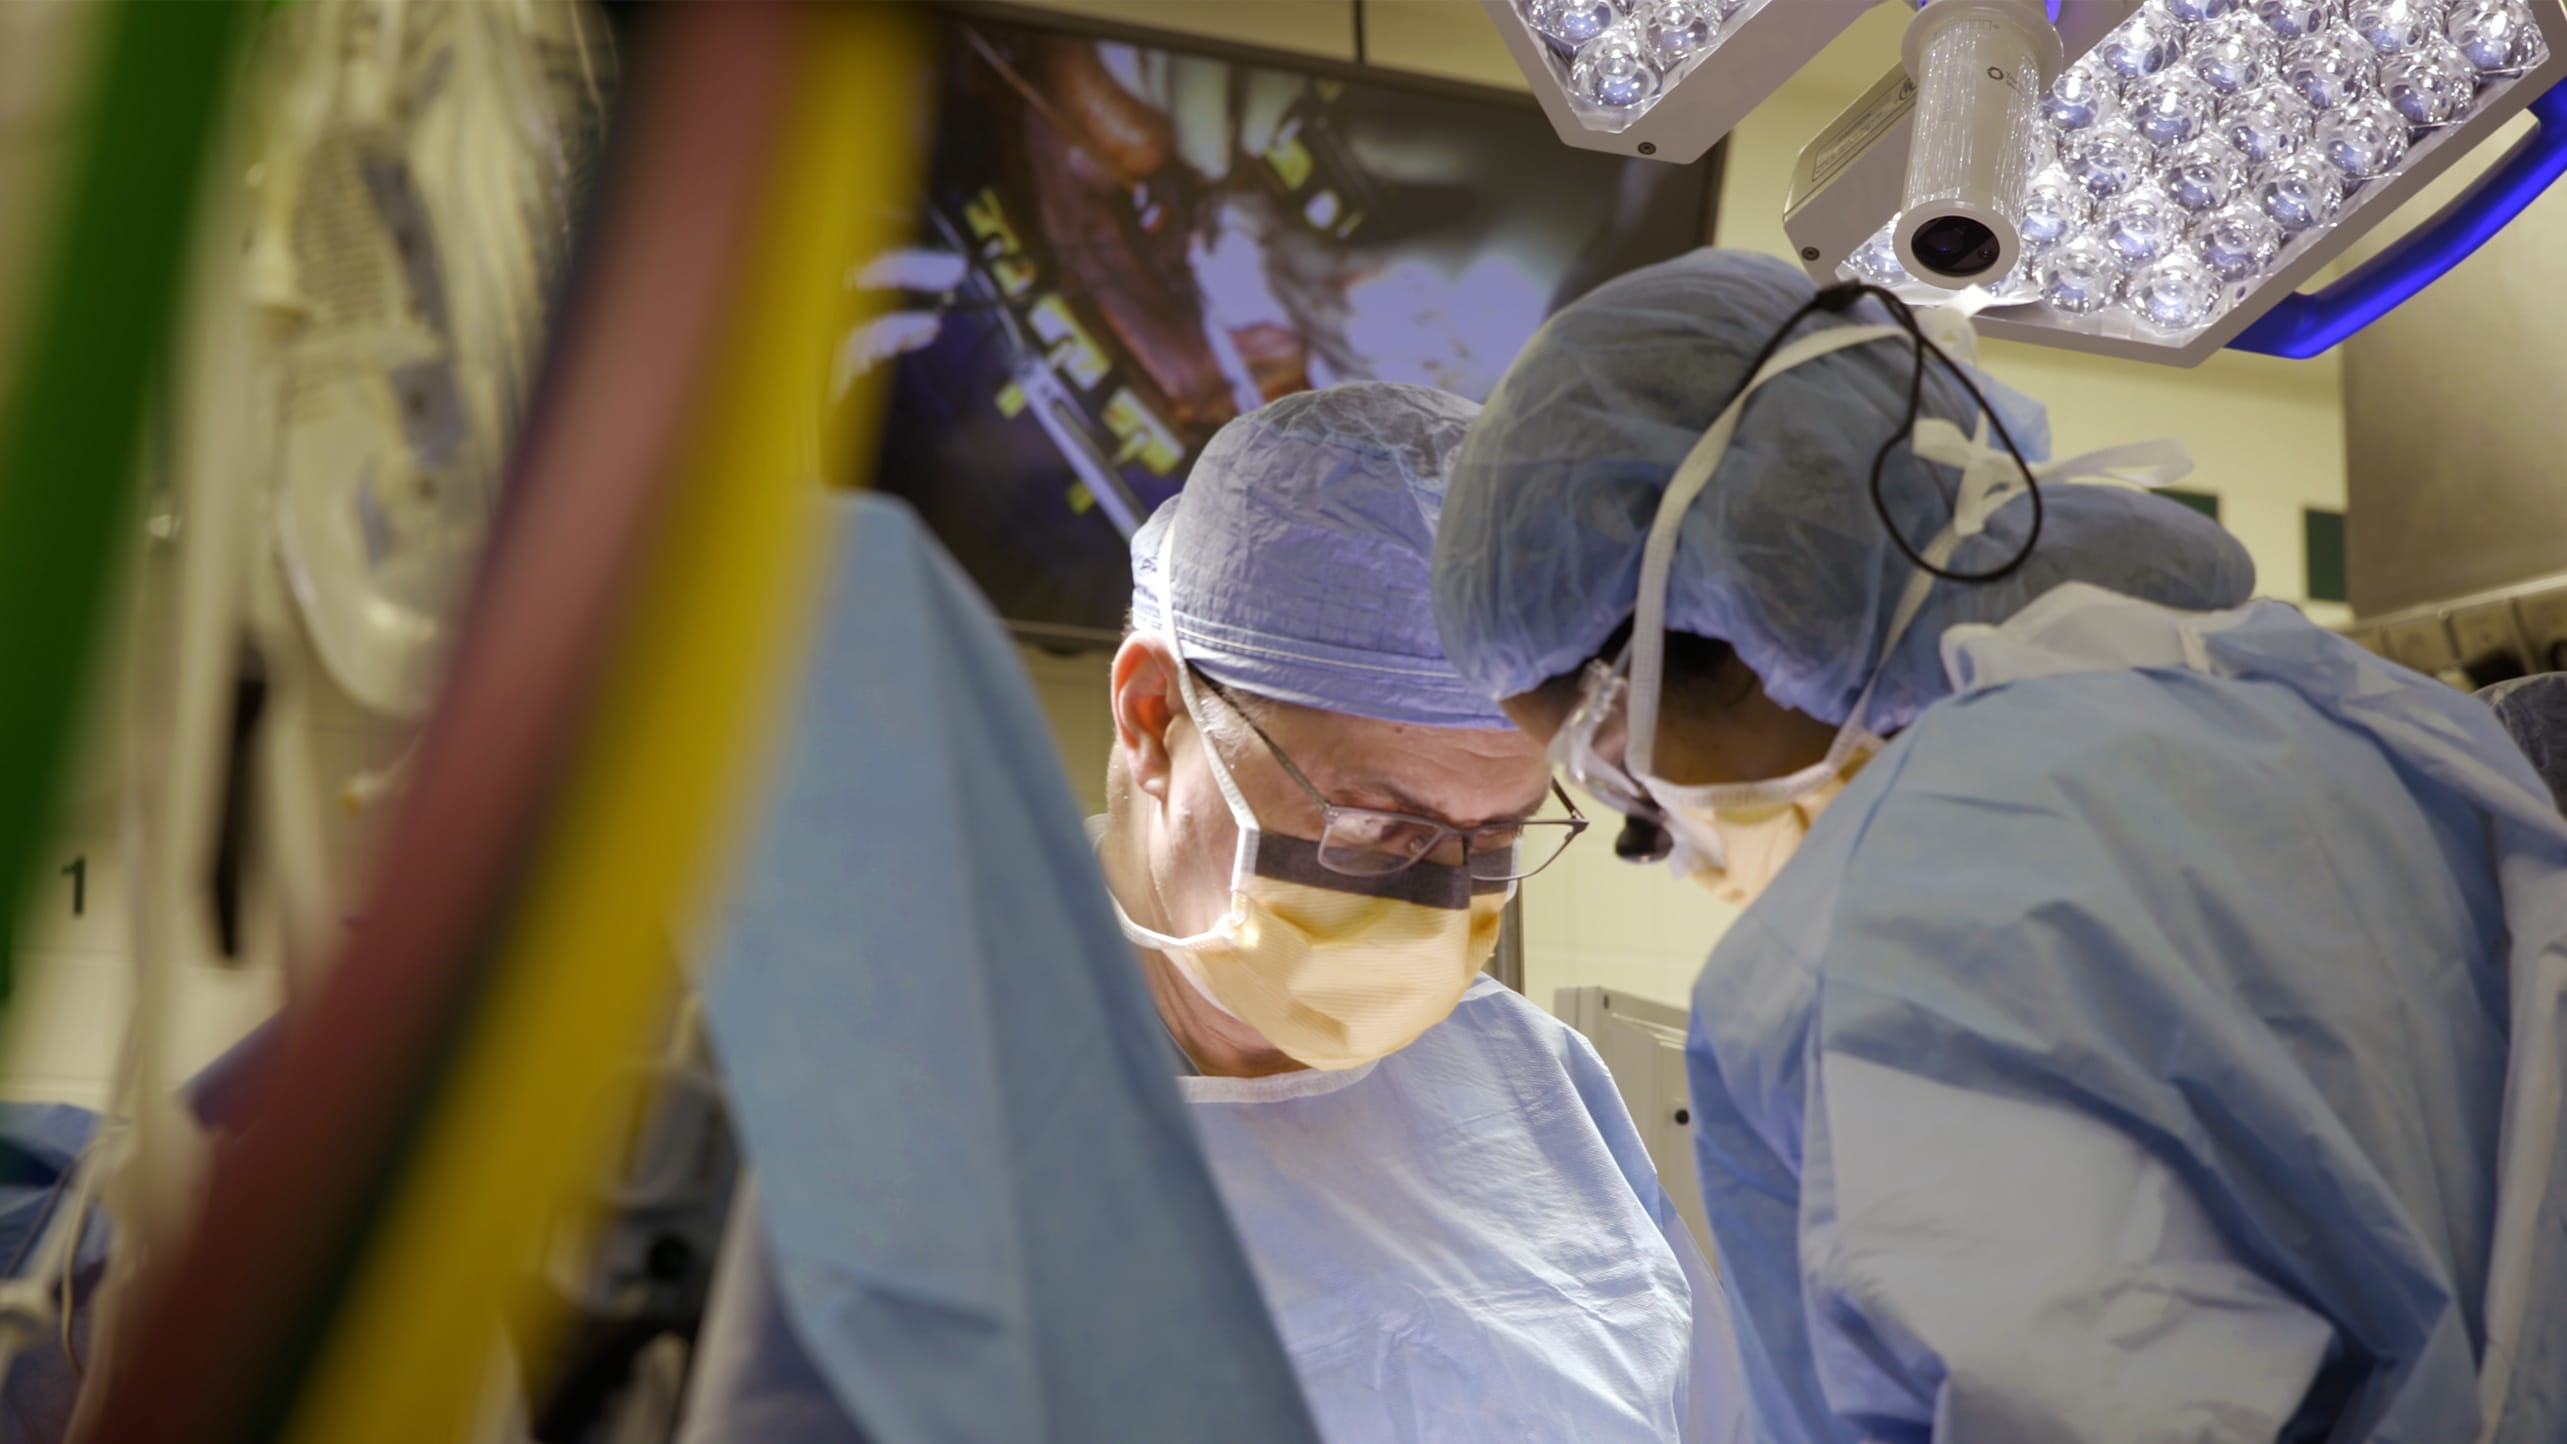 Doctors perform open heart surgery, possibly repair a ruptured aortic aneurysm